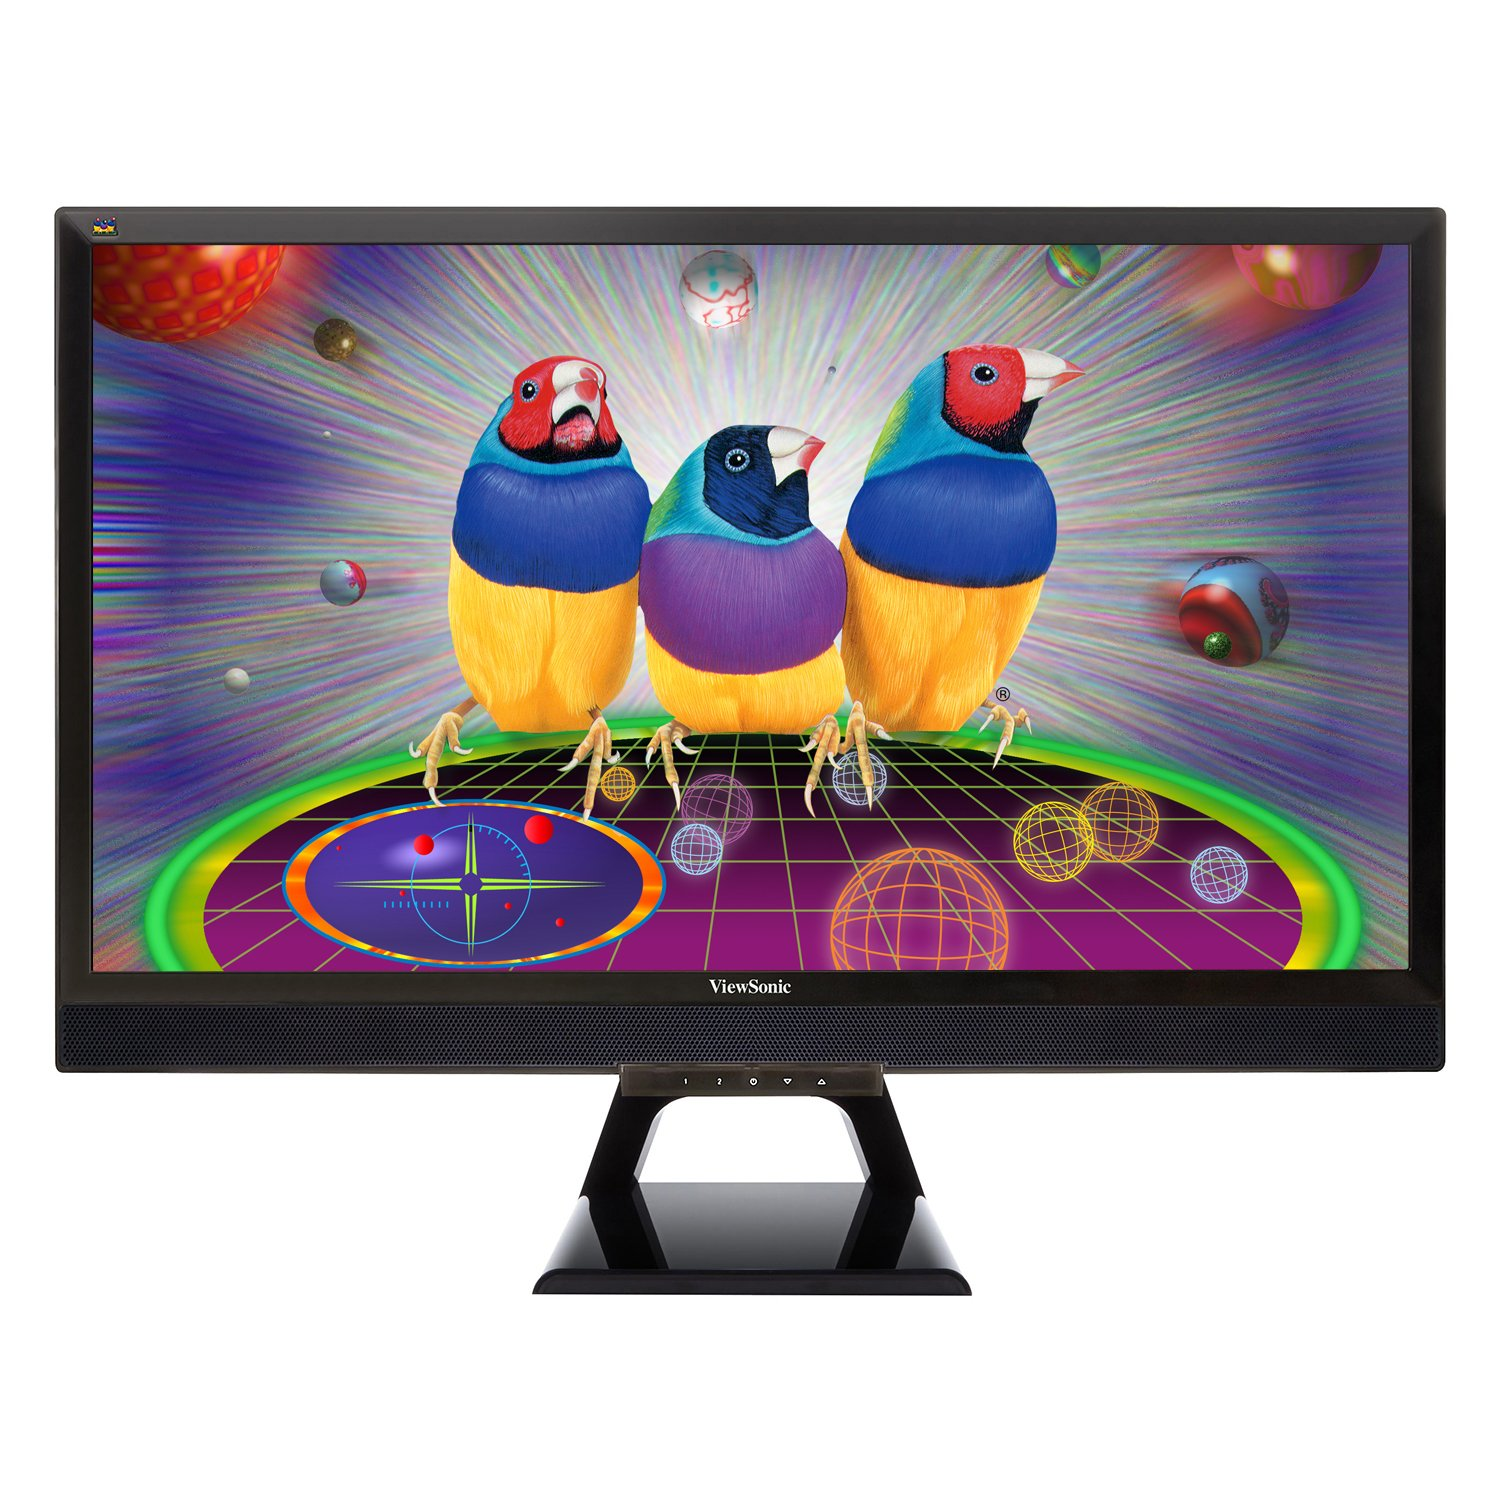 ViewSonic VX2858sml 28-Inch SuperClear Pro LED Monitor (Full HD 1080p, 50M:1 DCR, Dual MHL(HDMI)/VGA, 8-bit Color)